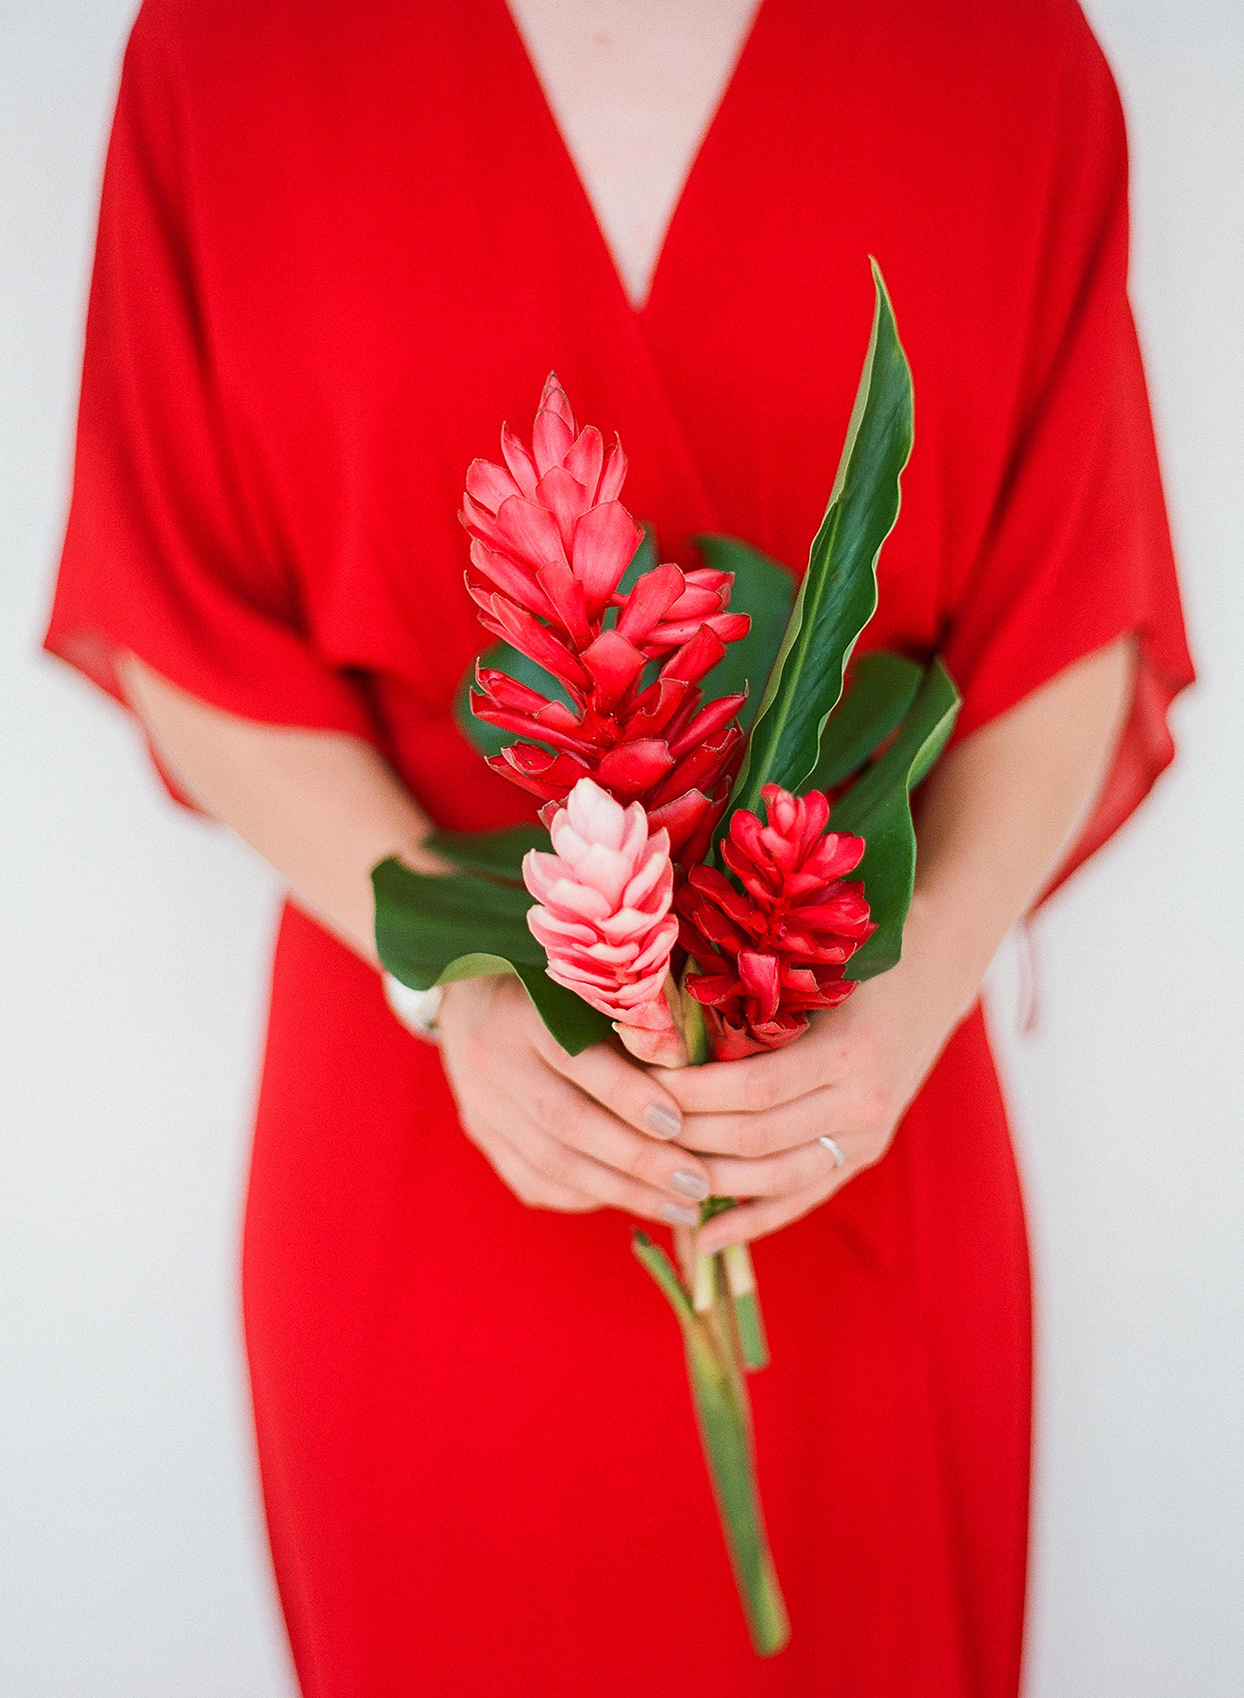 kelly sanjiv wedding bridesmaid in red dress holding floral bouquet